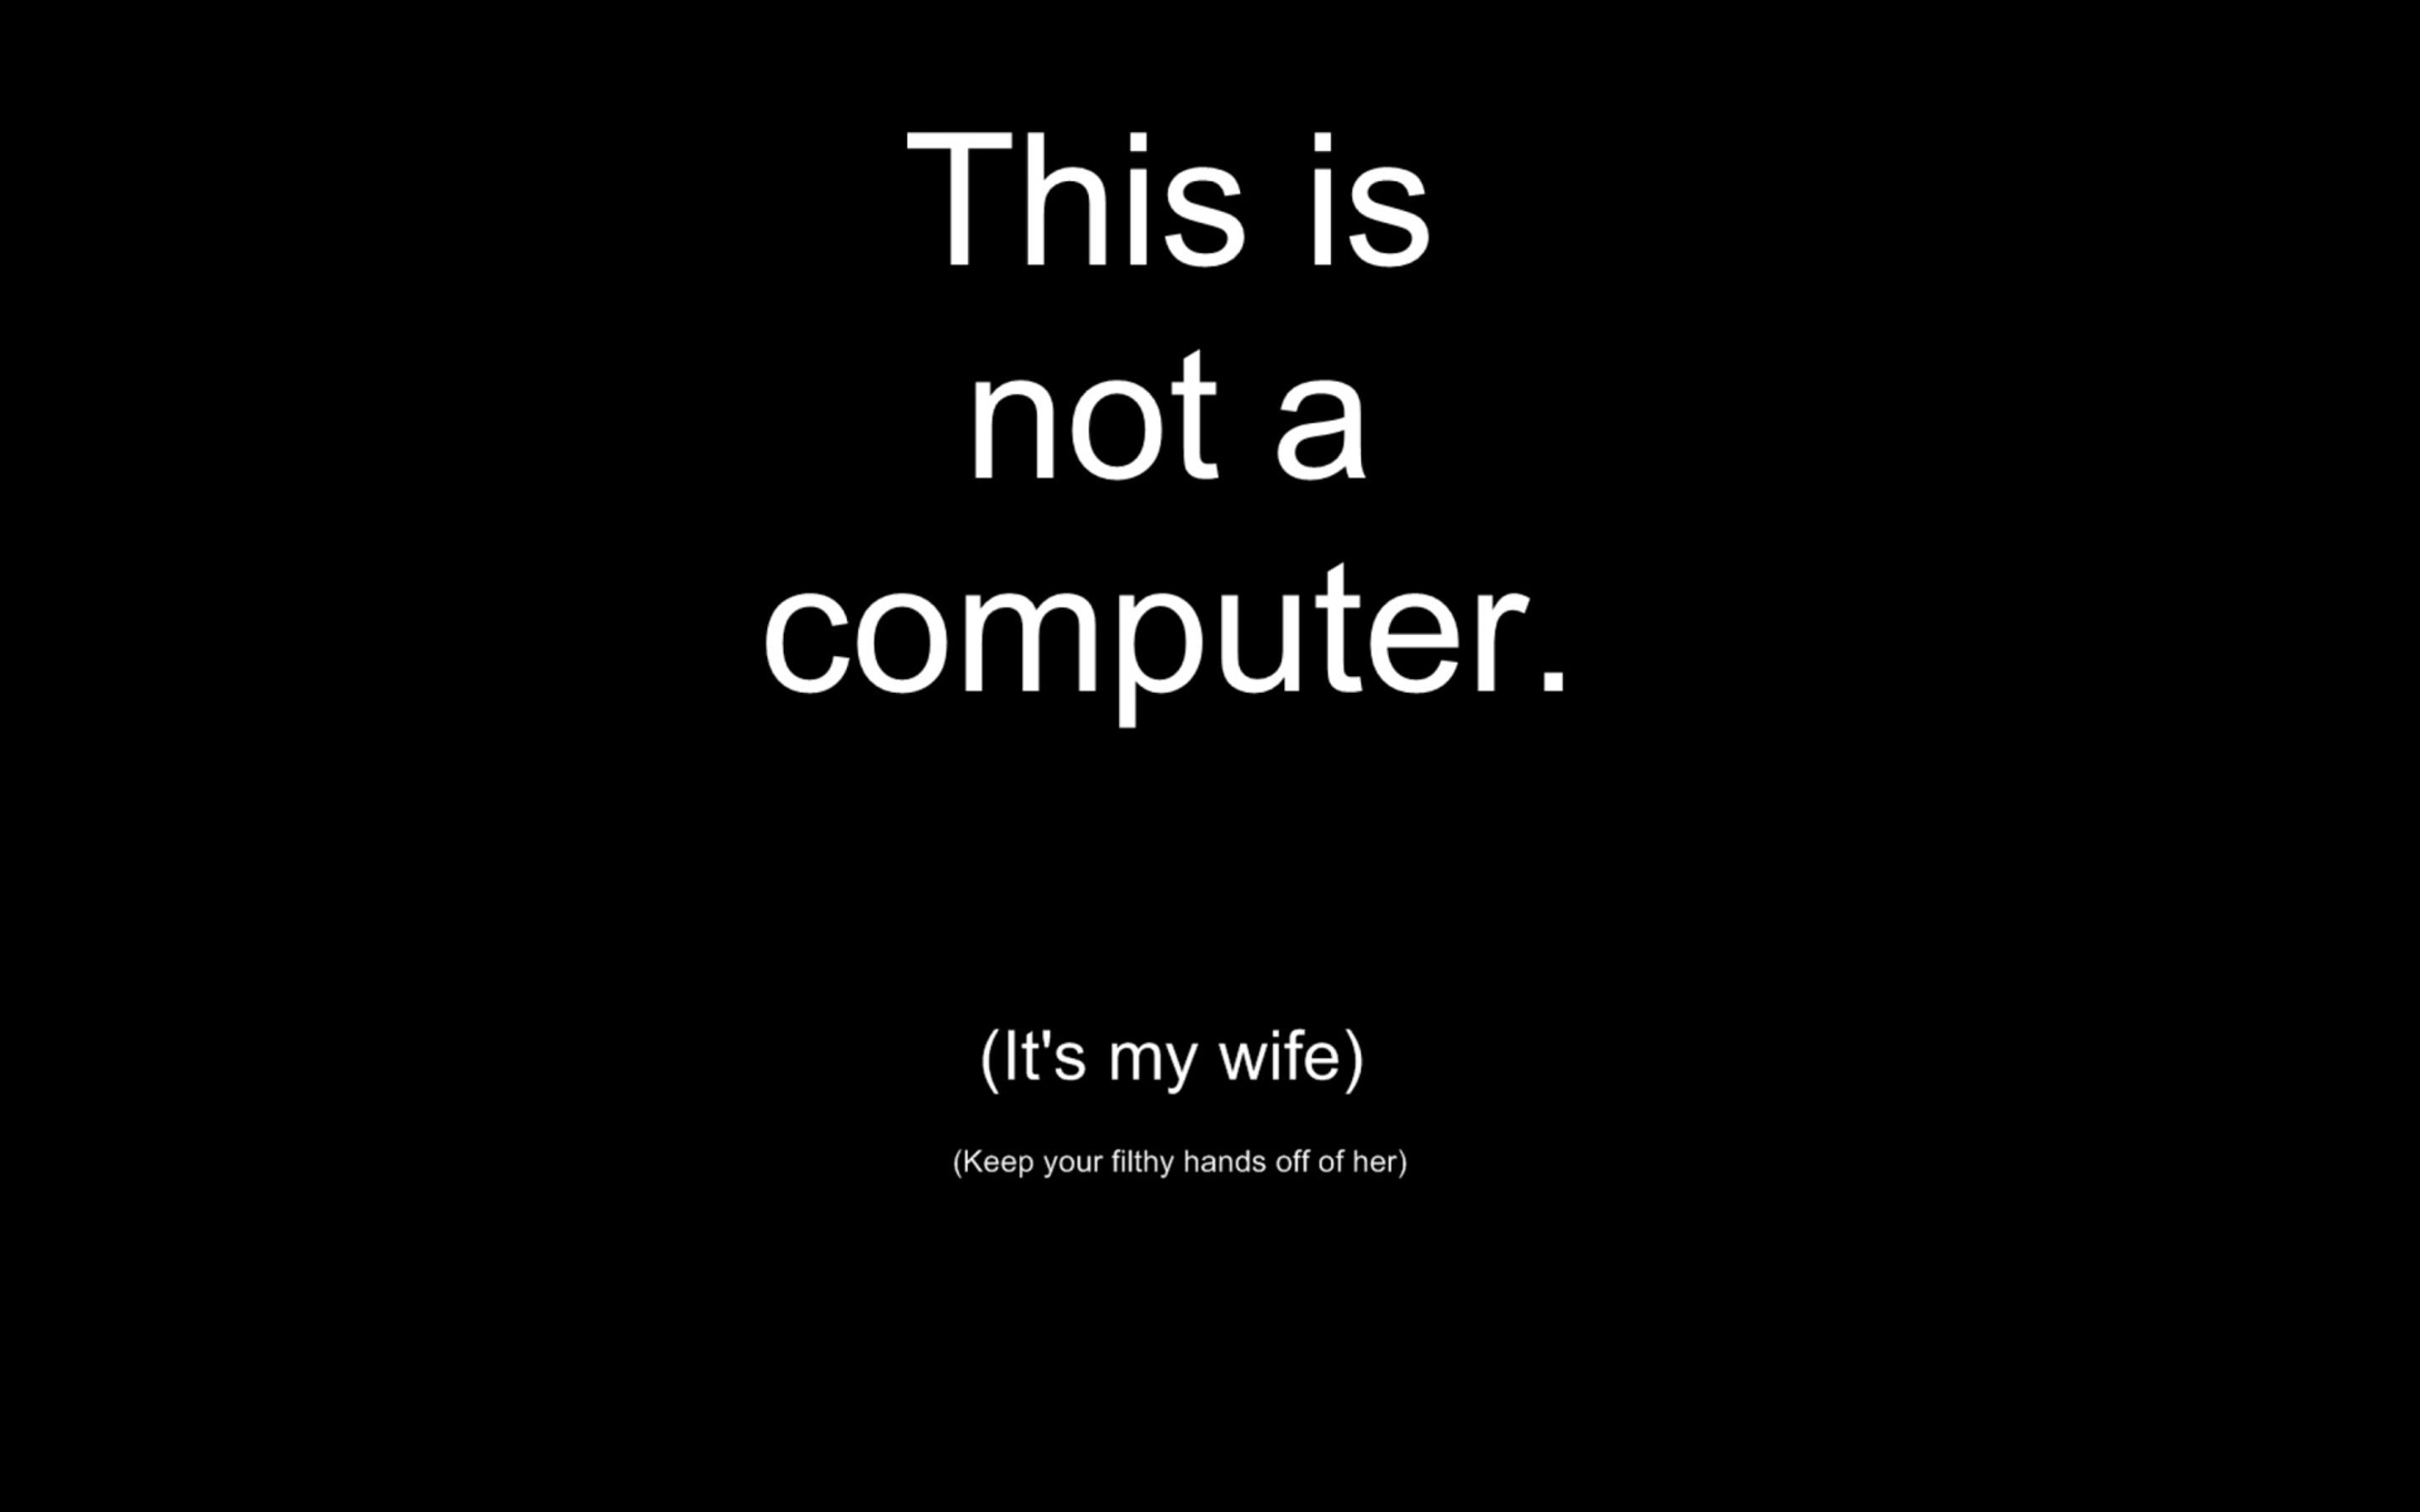 Download Wallpaper 2880x1800 Funny Message About Wife And Computers